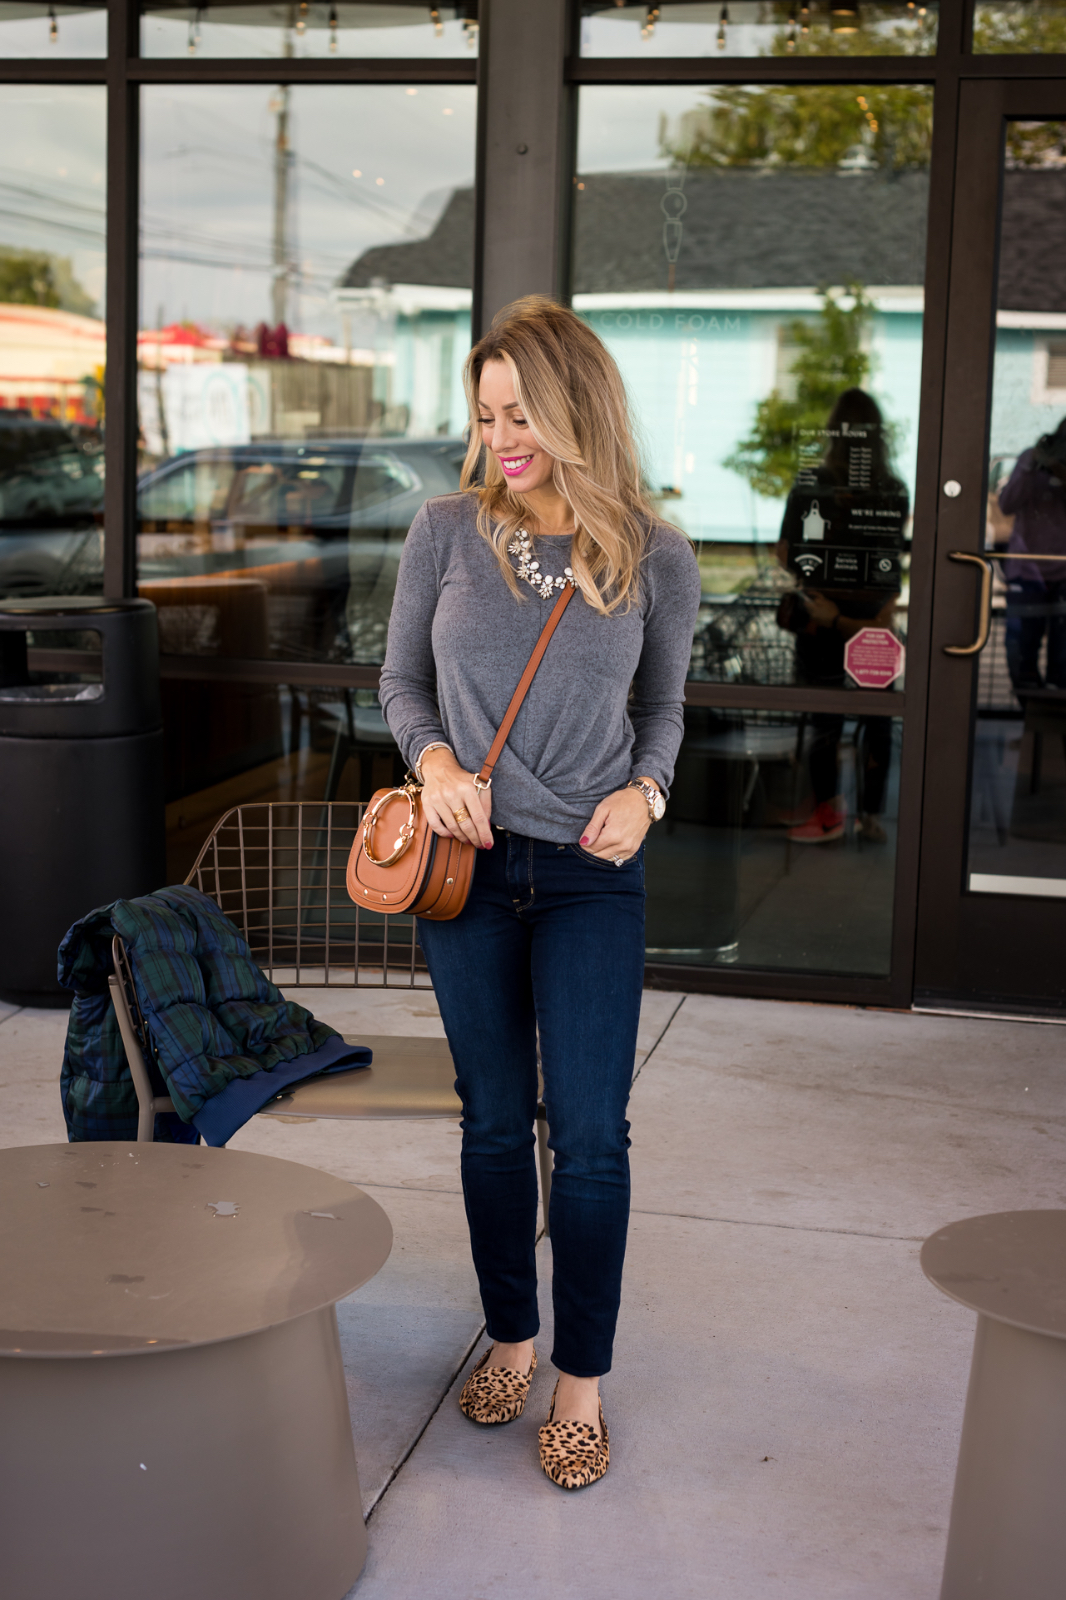 Grey top with jeans and leopard flats